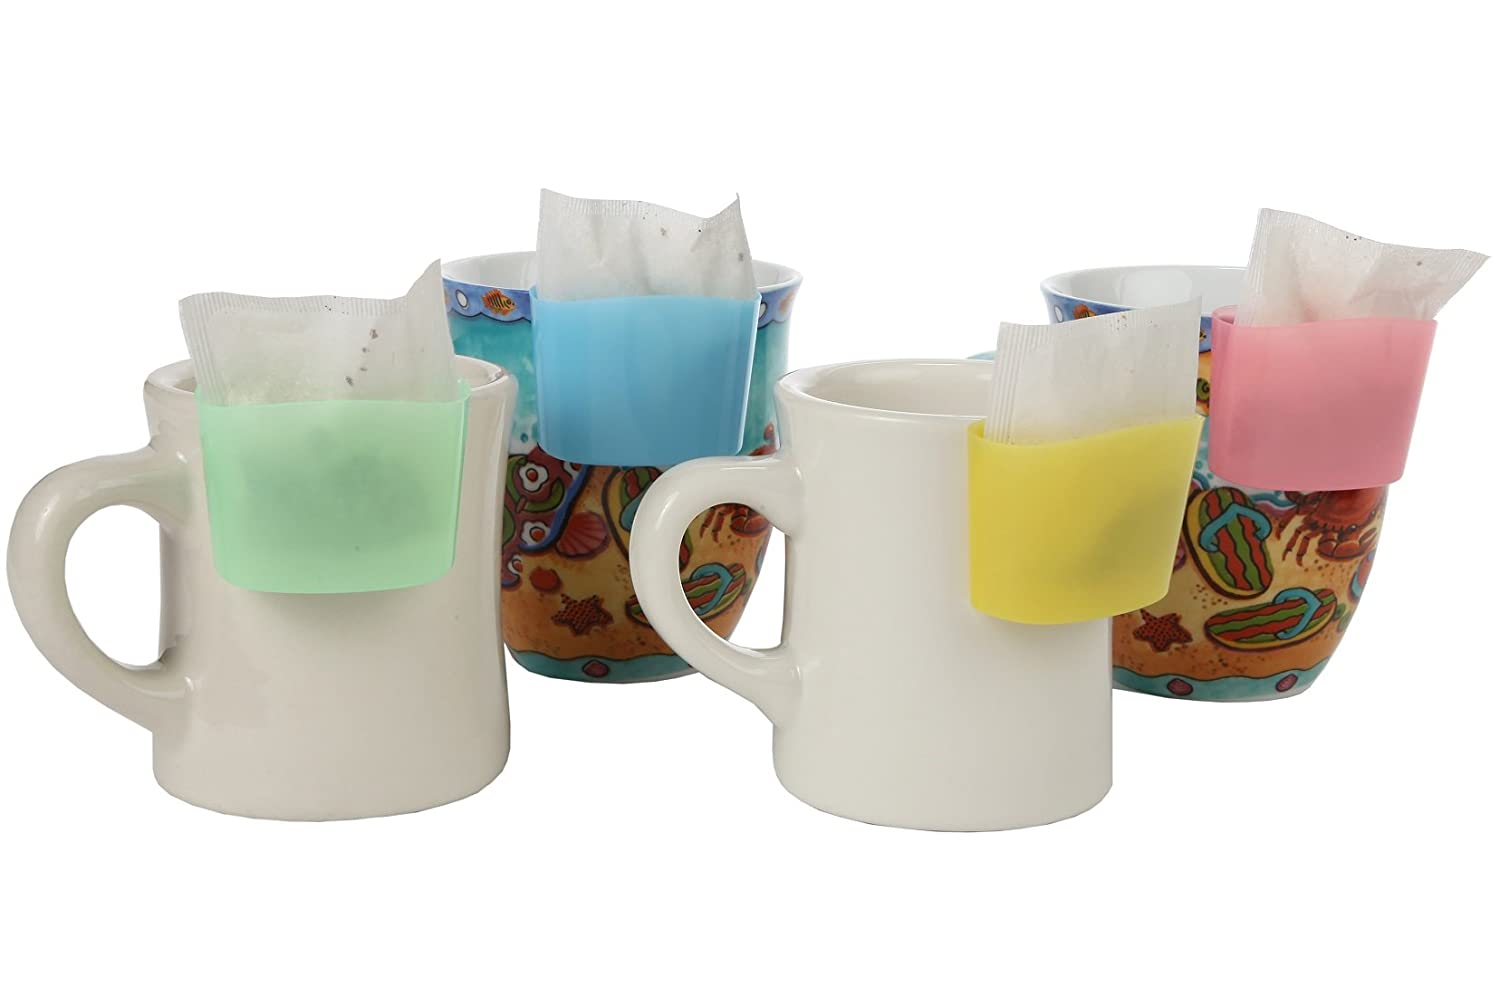 Home-X - Hanging Tea Bag Holder Set, Plastic Tea Bag Caddy Clips onto Mug (Not Provided) to Prevent Messes or Dripping After Steeping, Set of 4 SH971